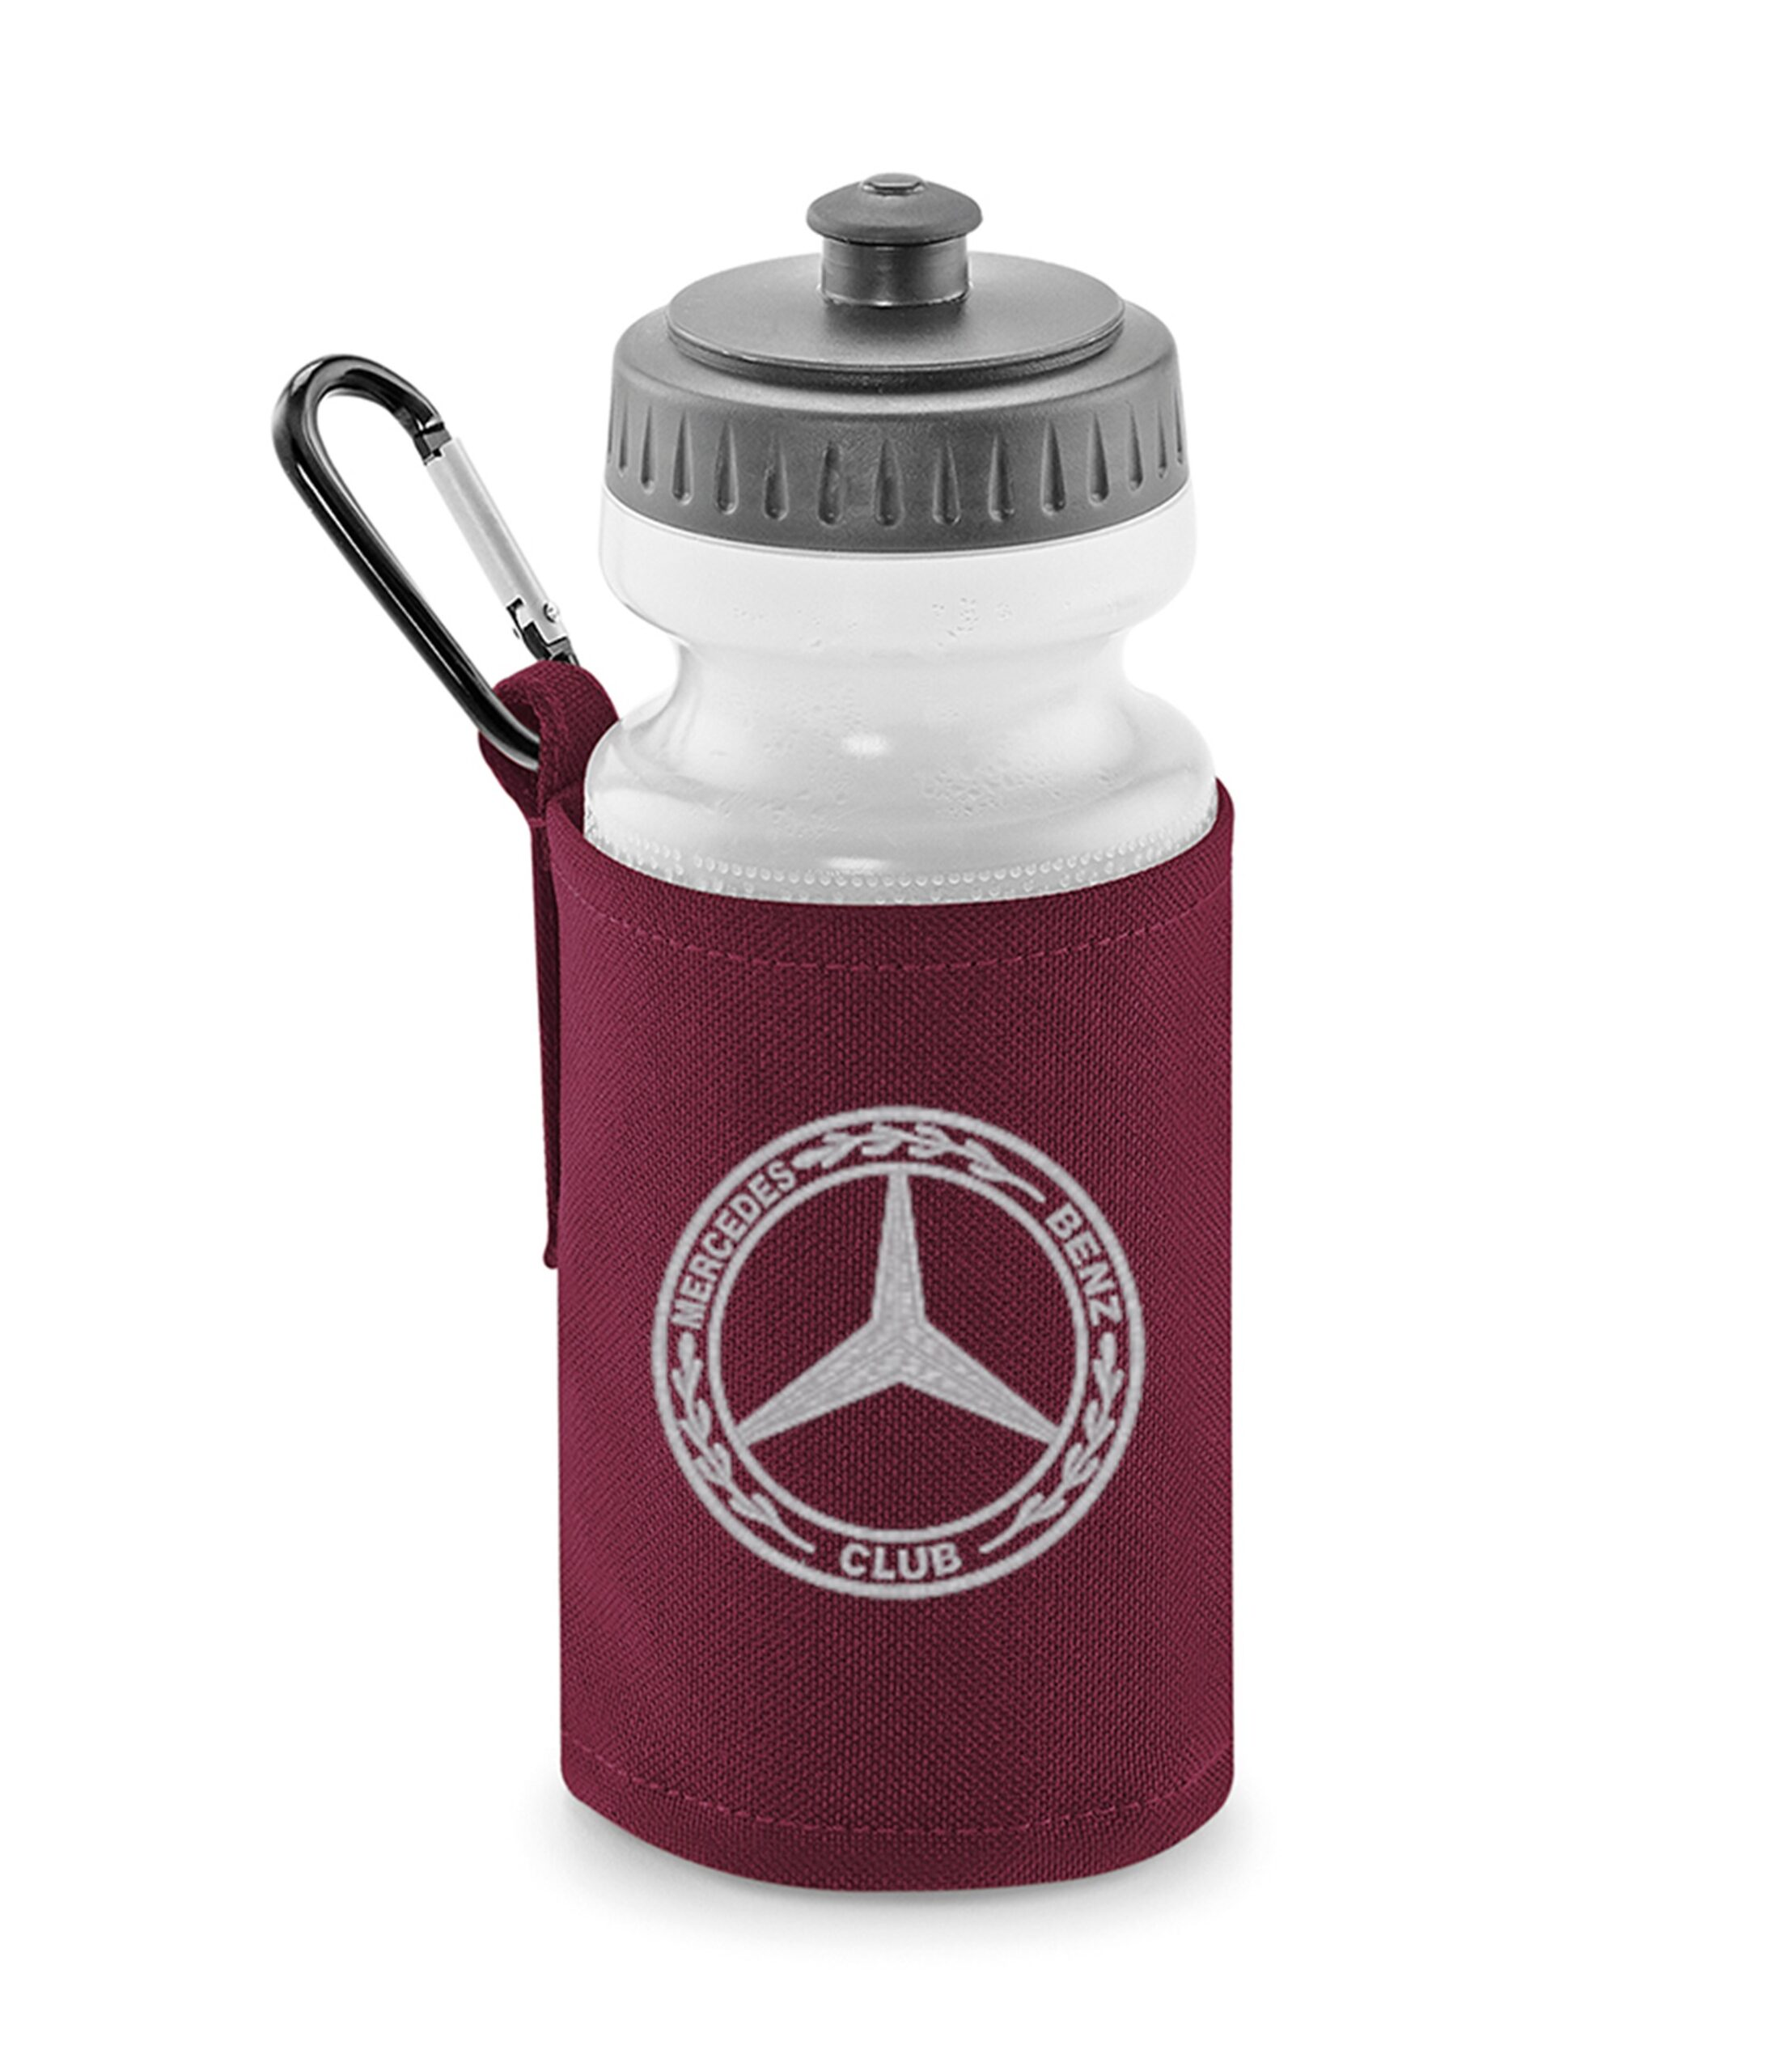 Mercedes-Benz Club Water Bottle and Holder Burgundy